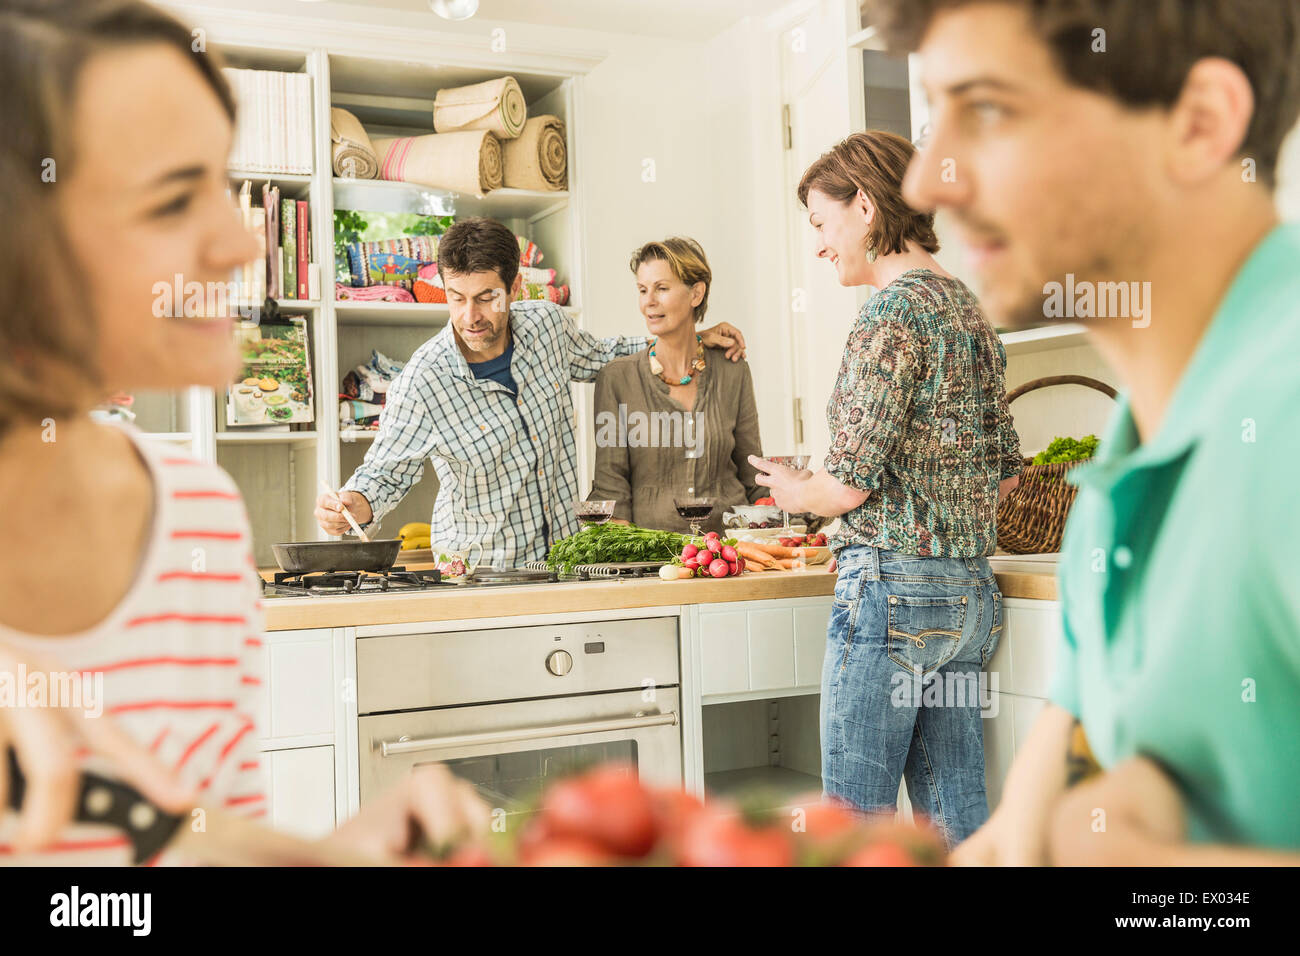 Five adult friends gathering for dinner party in kitchen - Stock Image